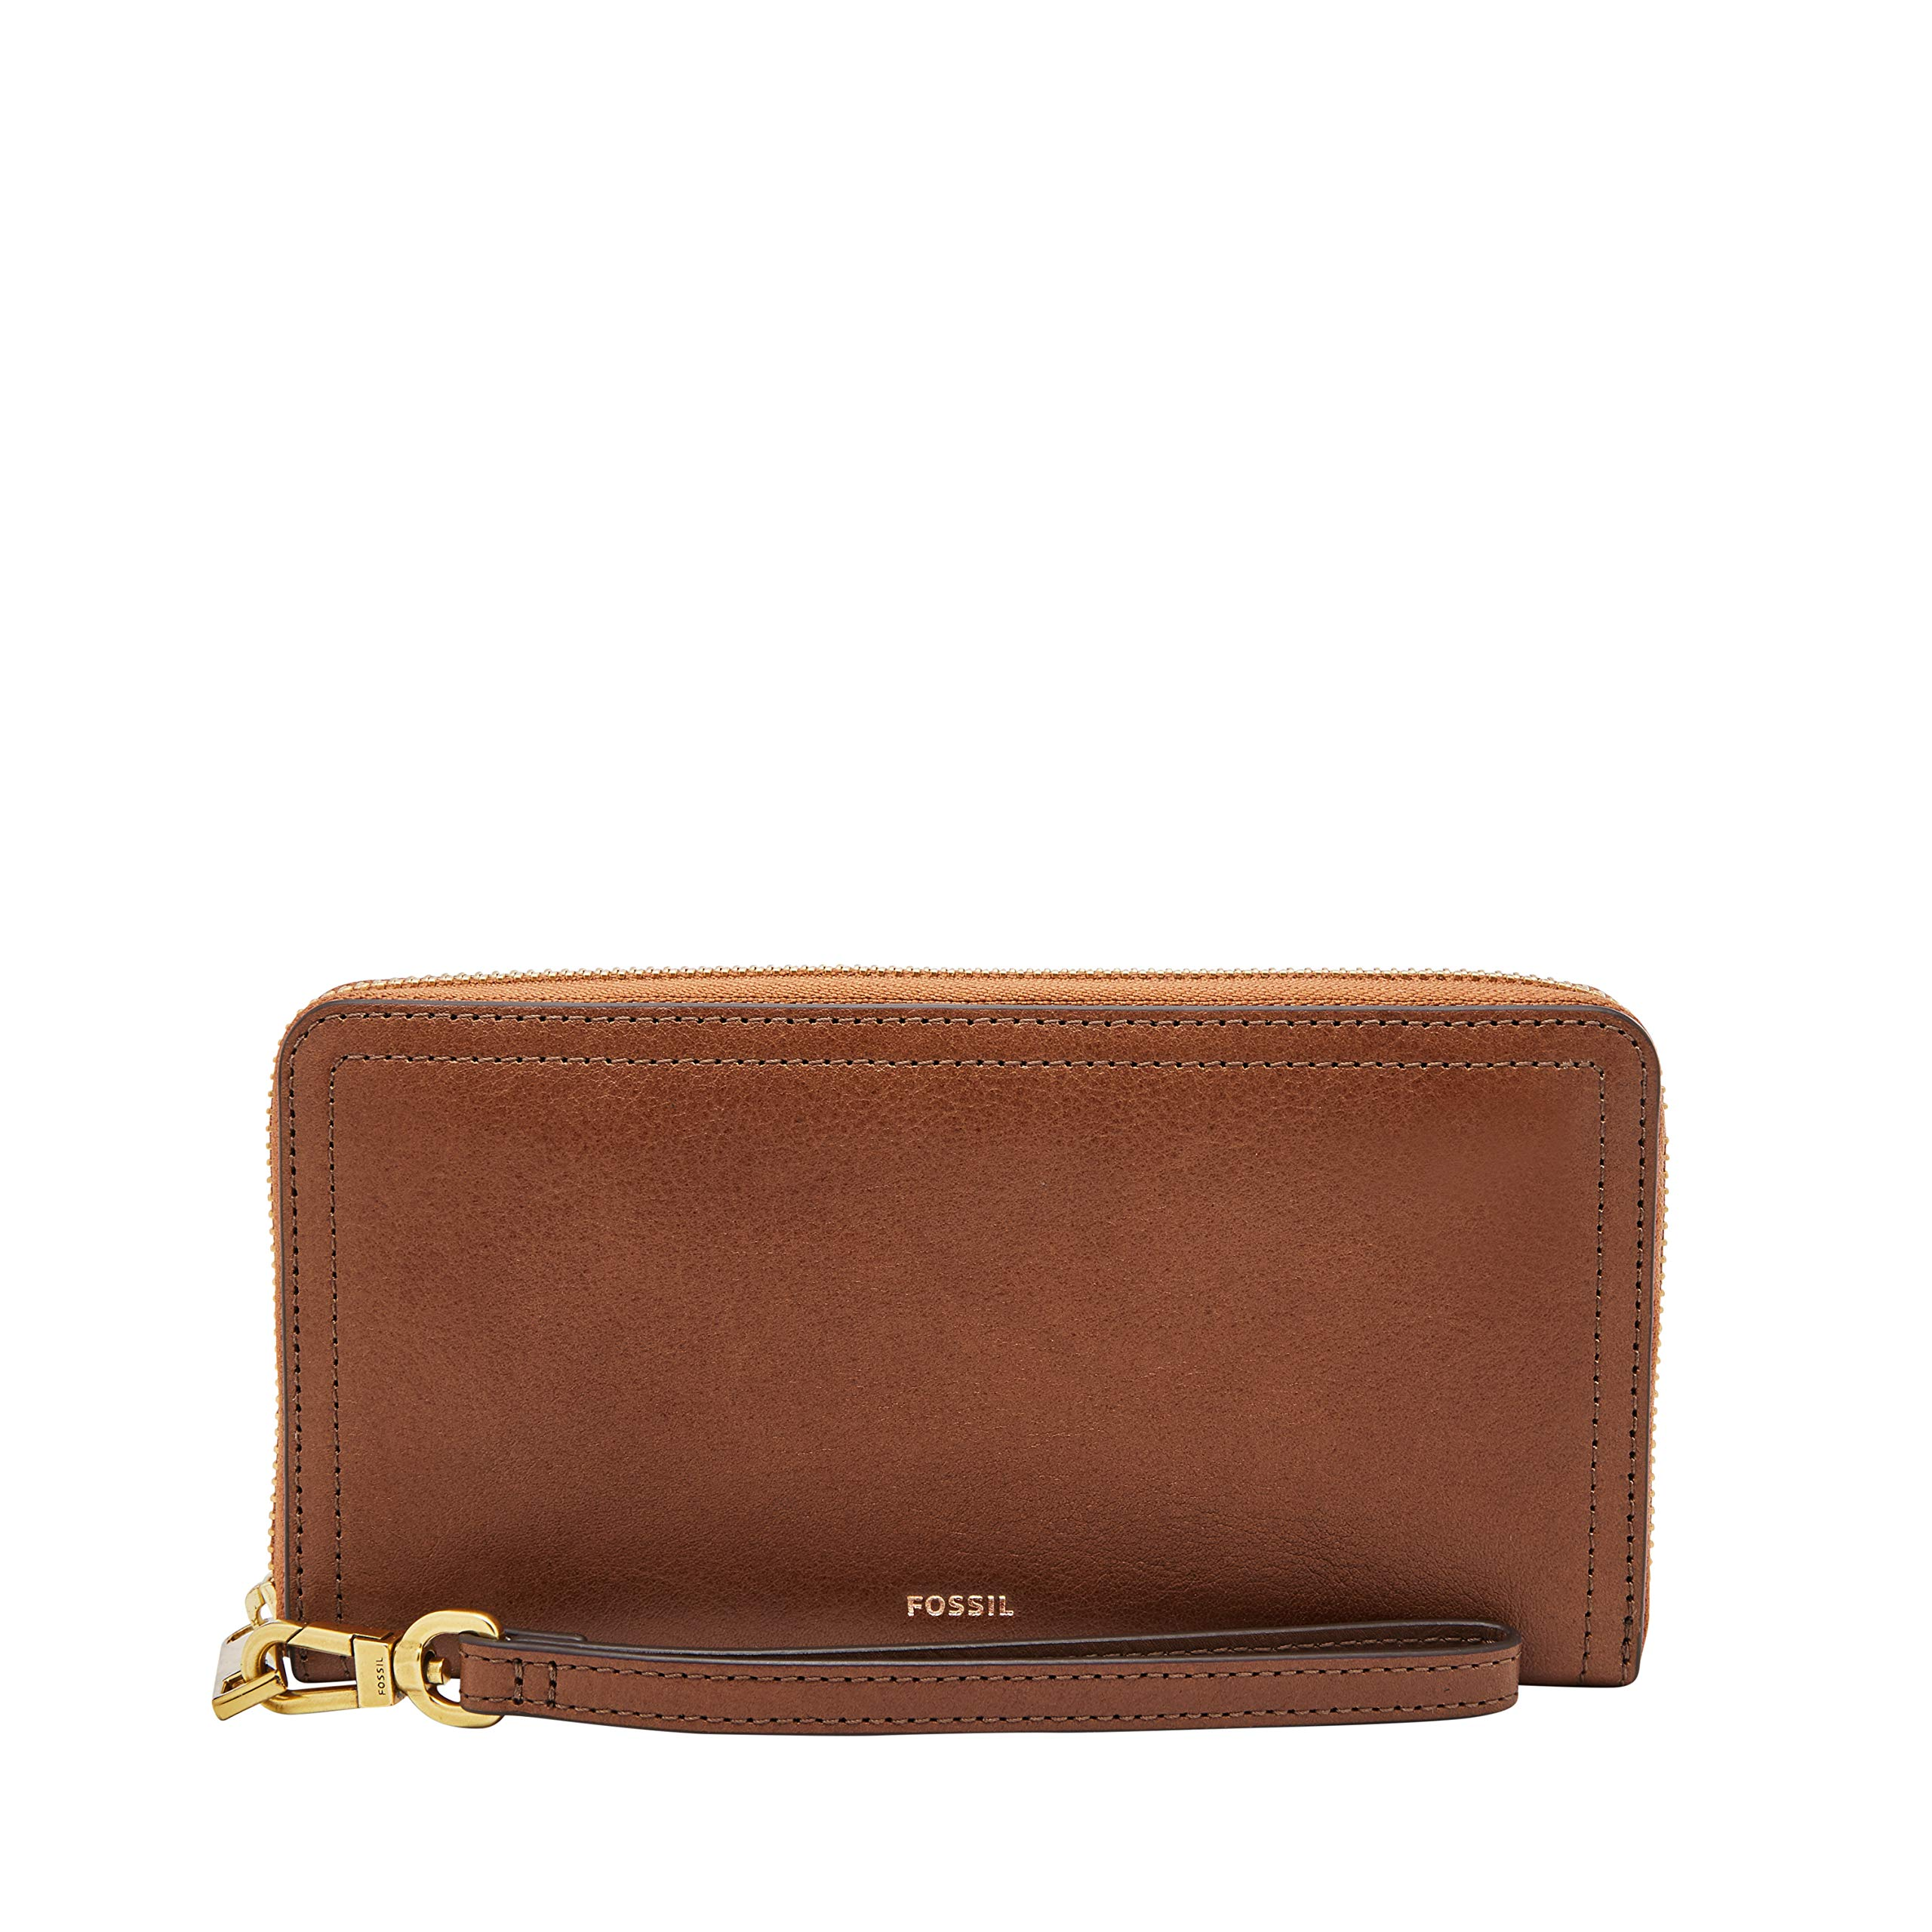 Fossil Logan RFID Zip Around Clutch Brown, by Fossil